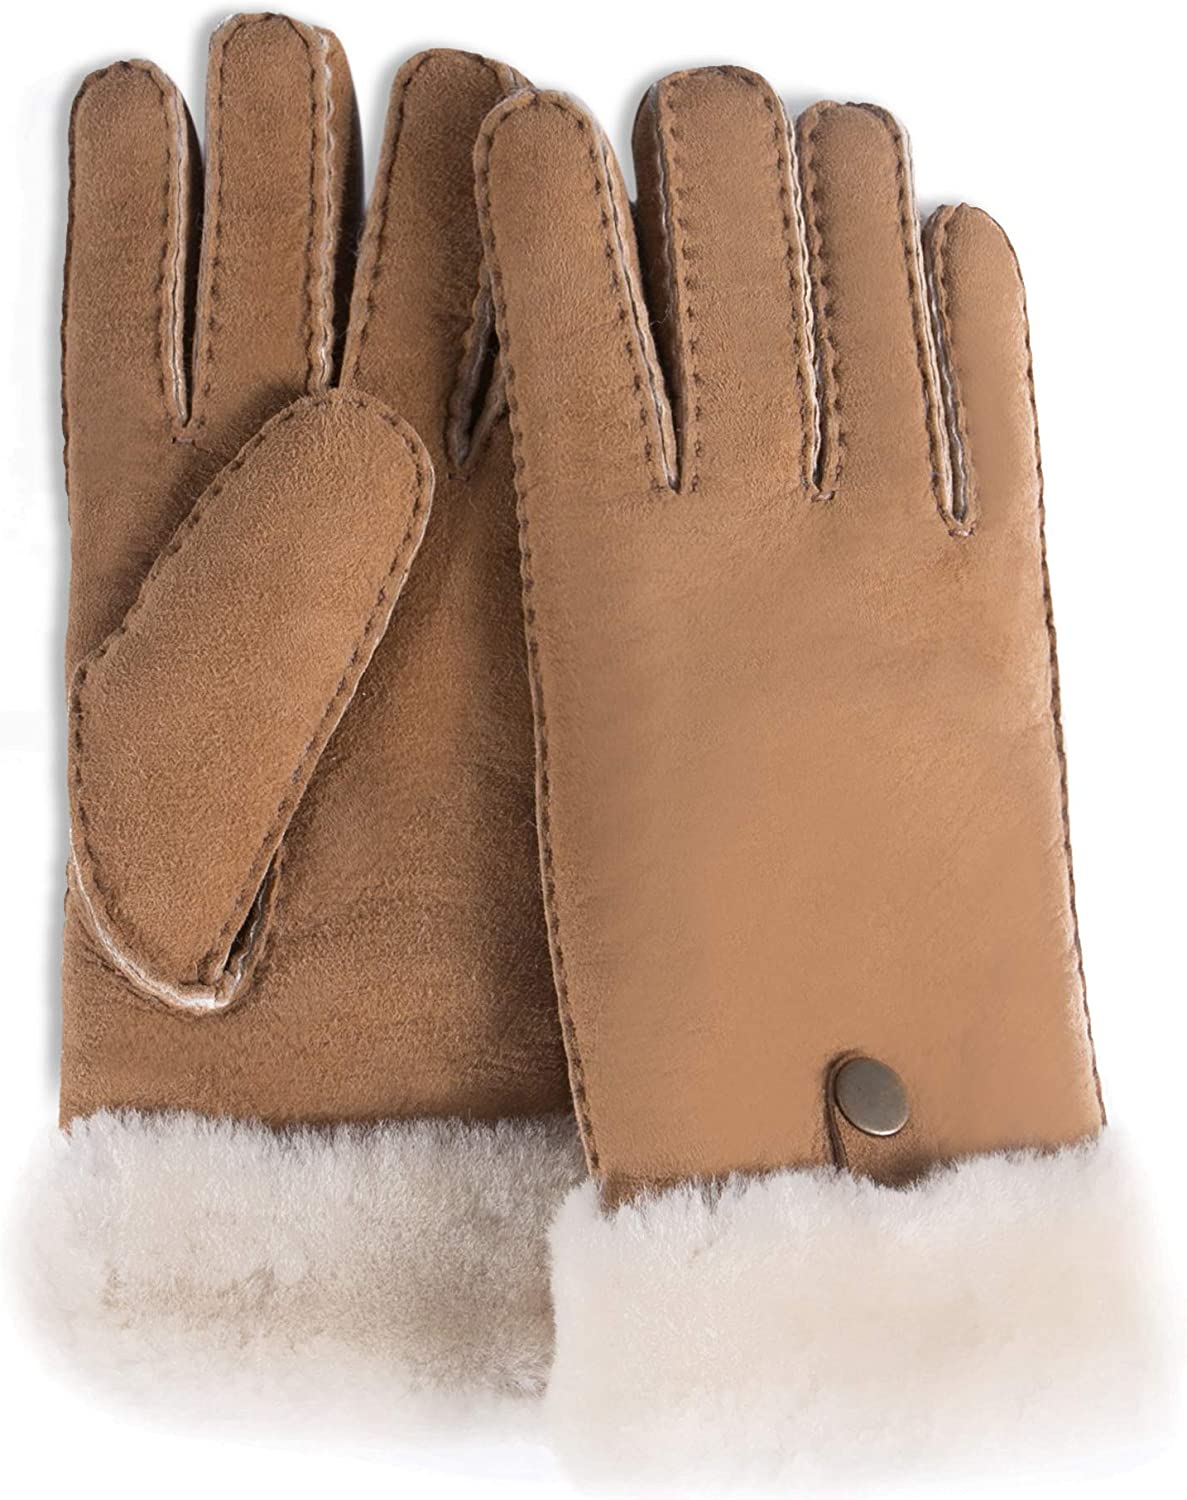 YISEVEN Men's Merino Rugged Lambskin Gloves Max 58% OFF Shearling Leather Bu Ranking TOP5